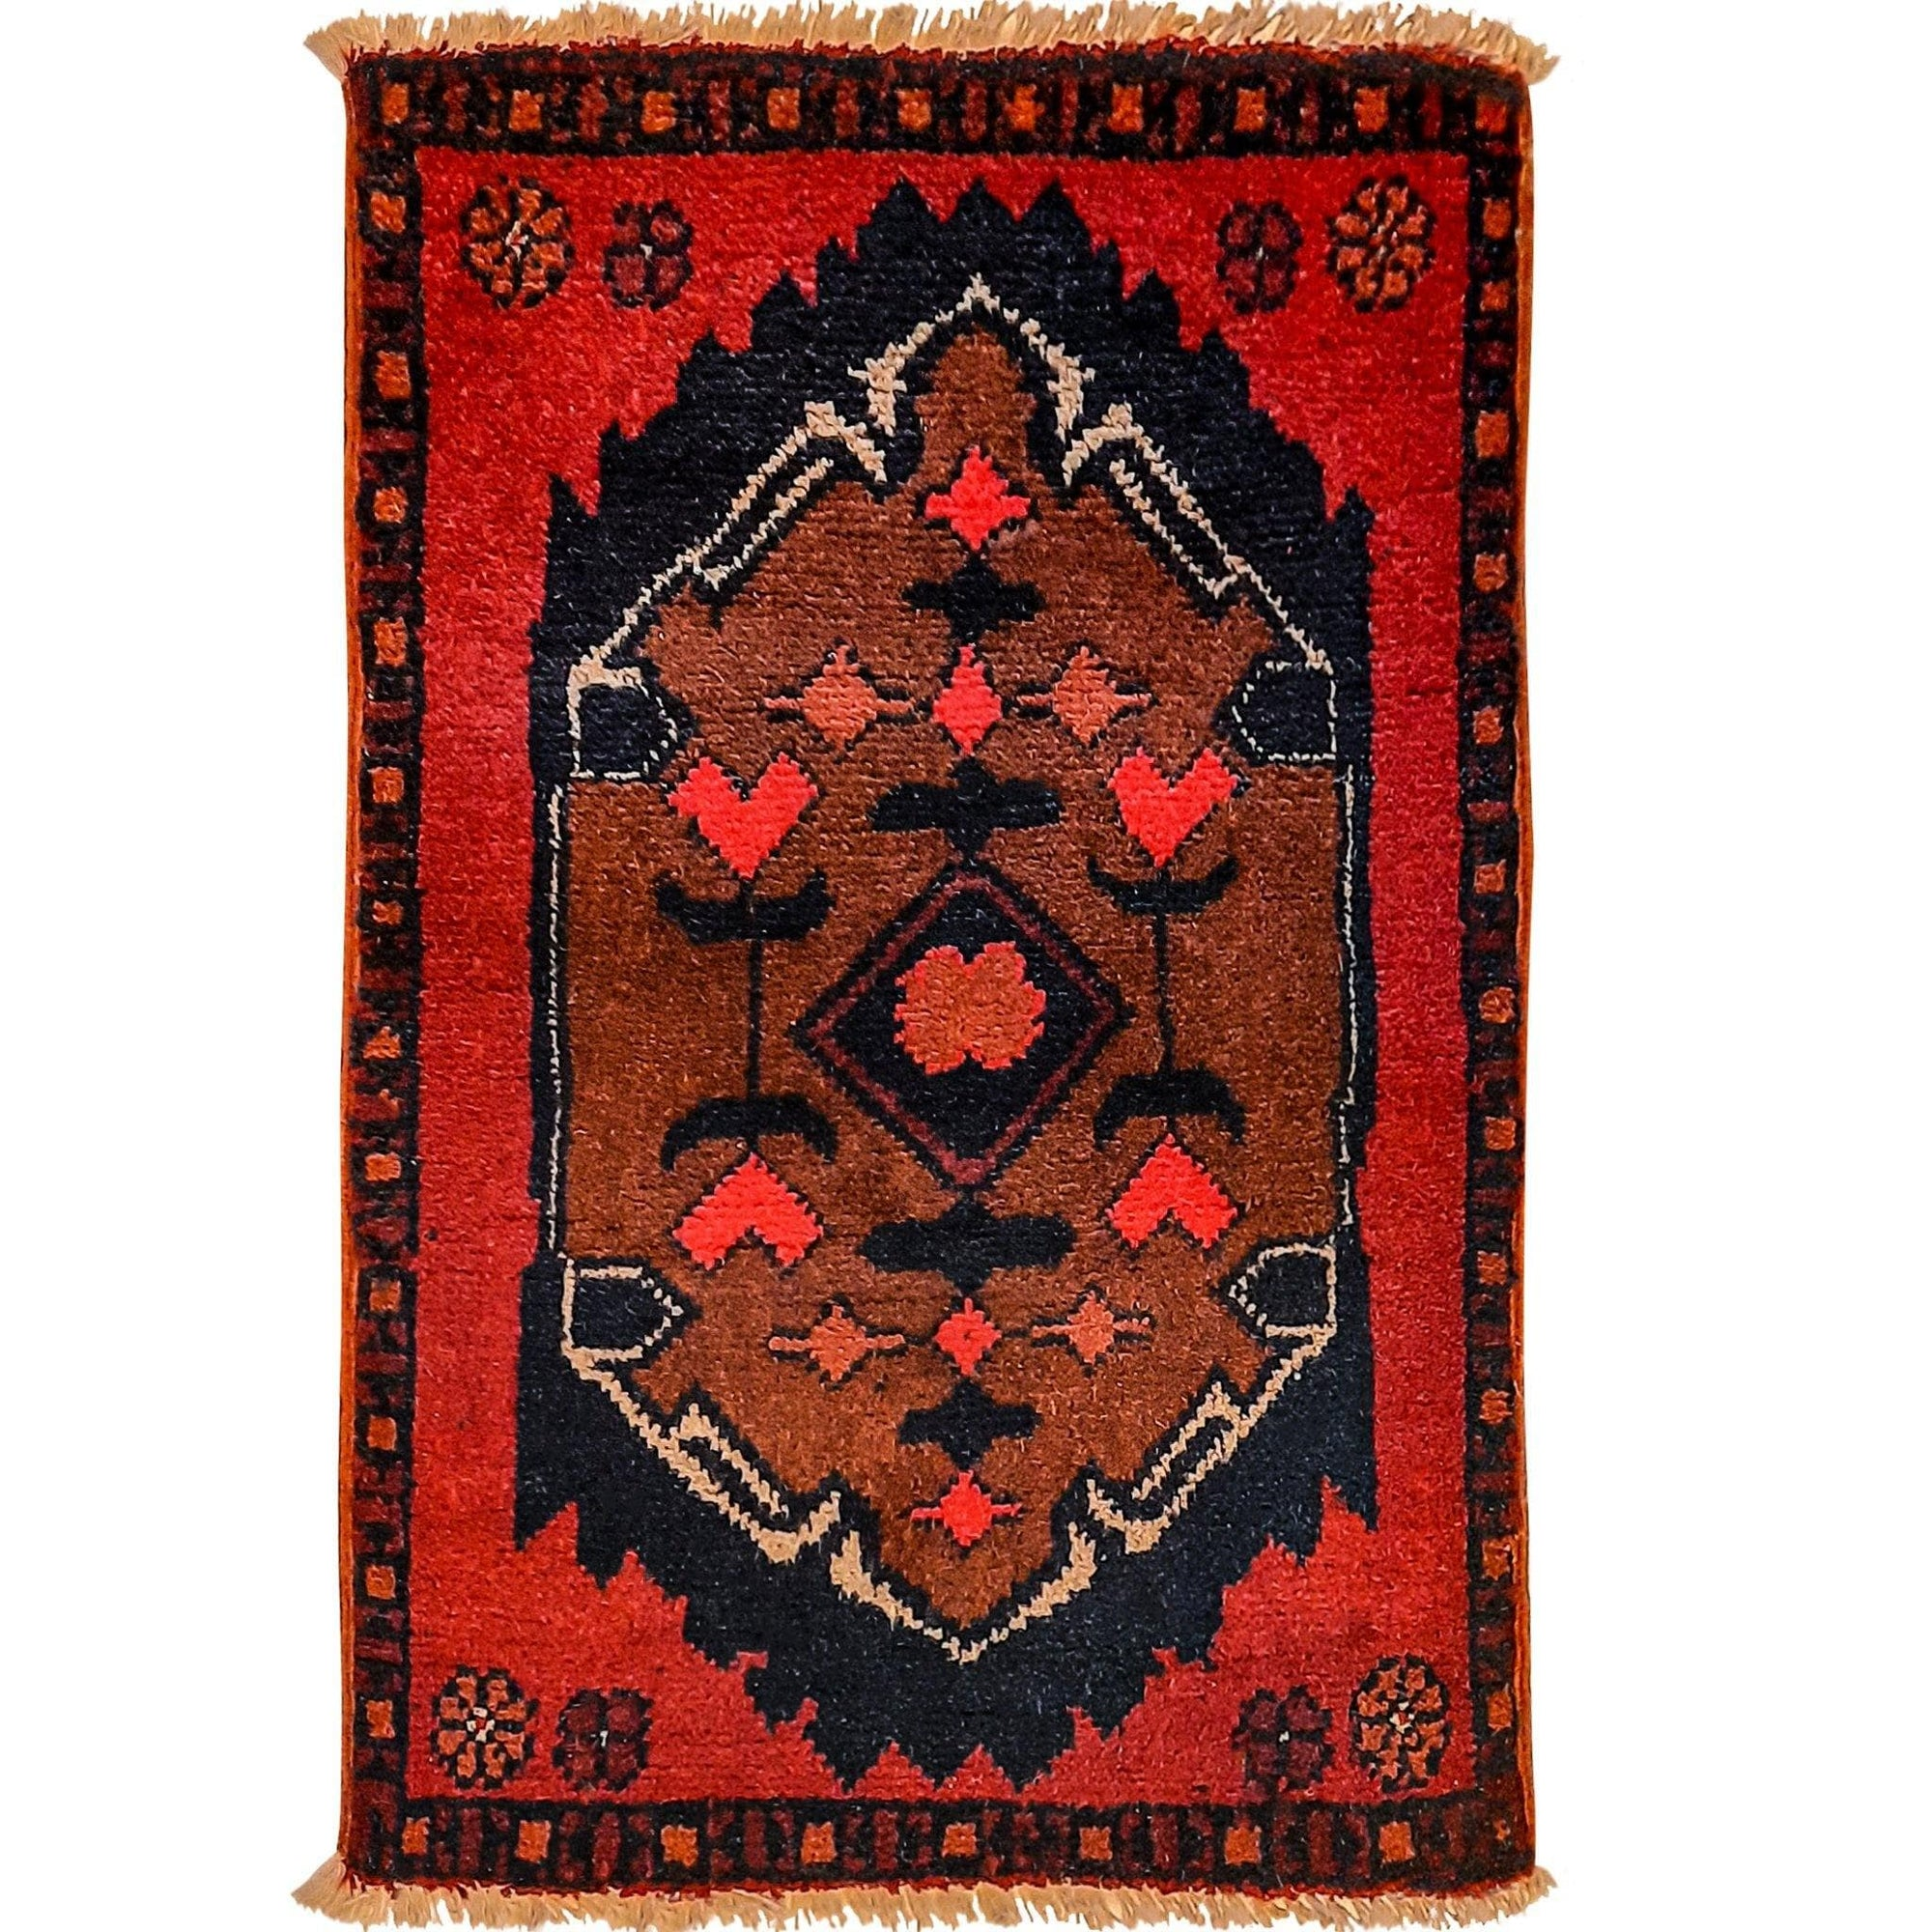 Extra Small Hand-knotted Wool Rug 39cm x 60cm Persian-Rug | House-of-Haghi | NewMarket | Auckland | NZ | Handmade Persian Rugs | Hand Knotted Persian Rugs